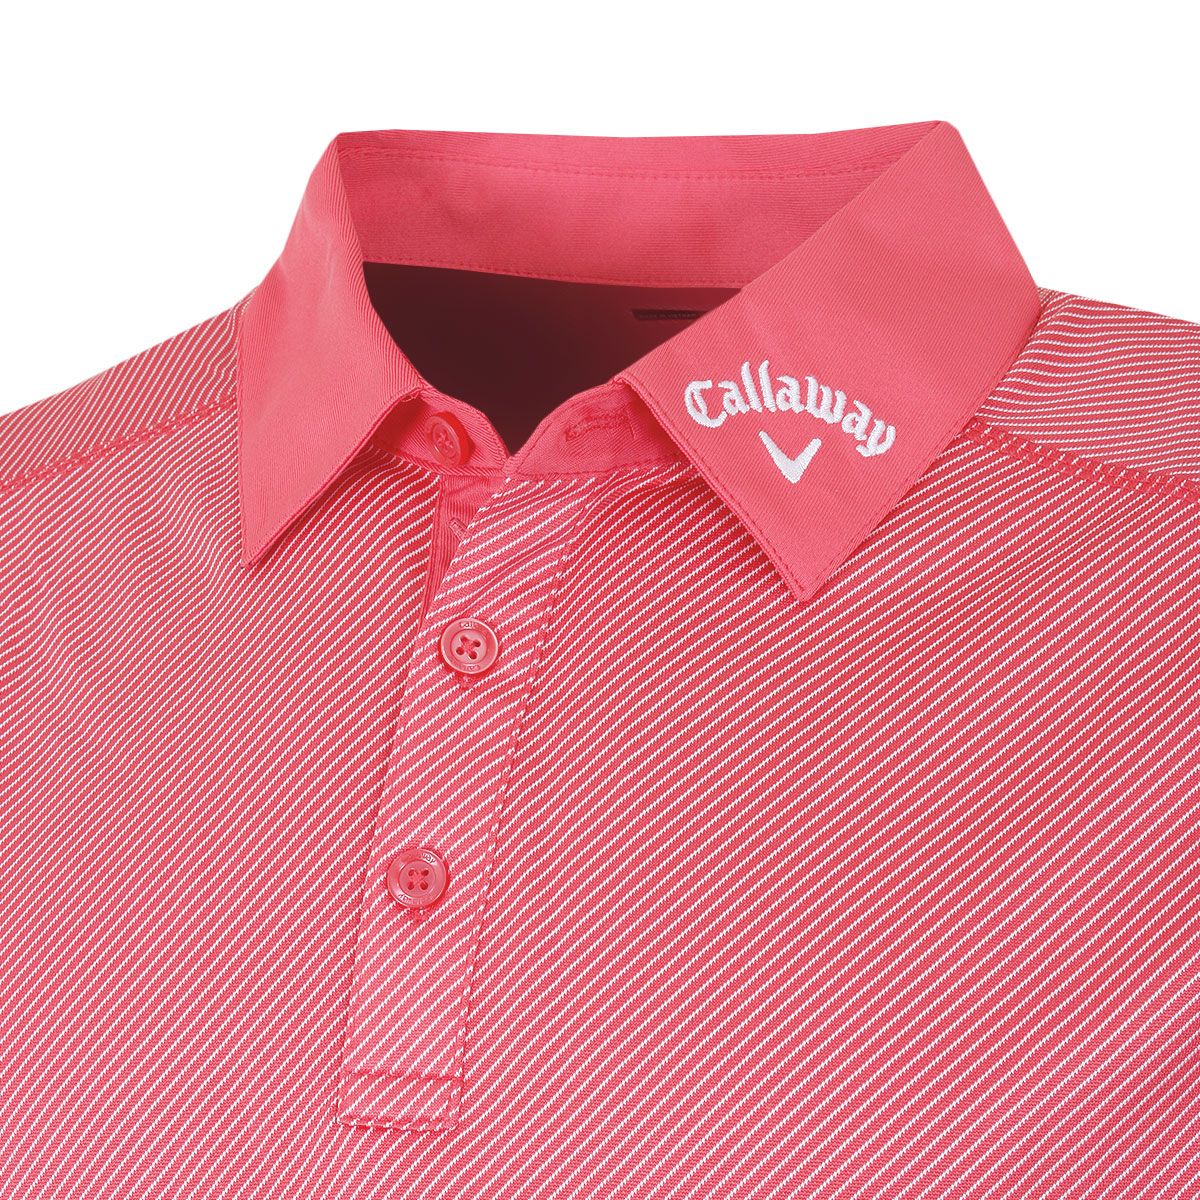 Callaway-Golf-Mens-Denim-Jacquard-Dri-Fit-Performance-Polo-Shirt-37-OFF-RRP thumbnail 7